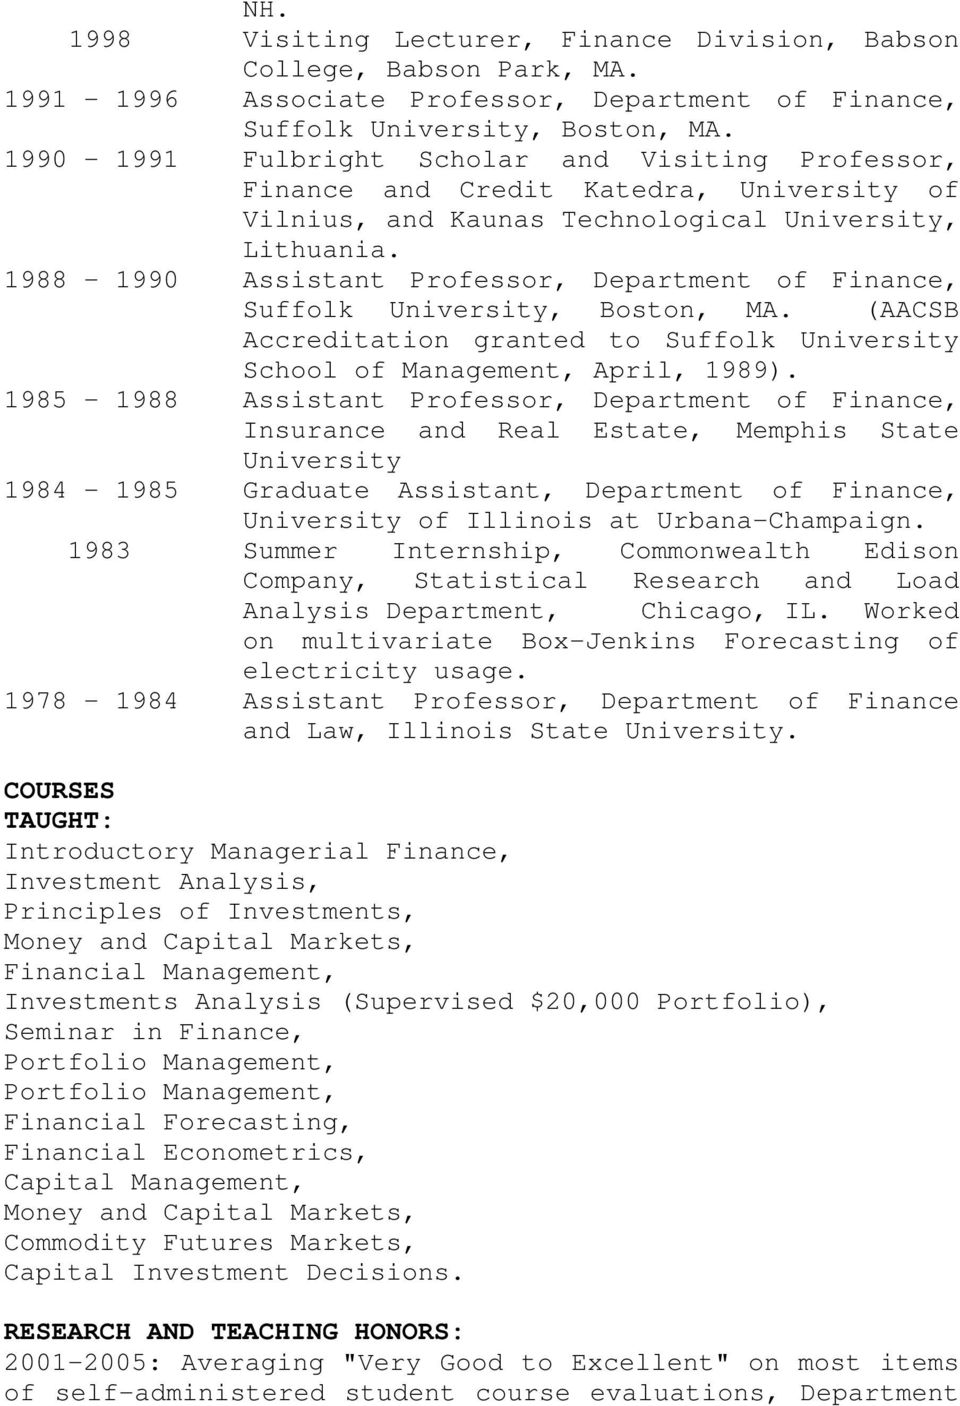 1988-1990 Assistant Professor, Department of Finance, Suffolk University, Boston, MA. (AACSB Accreditation granted to Suffolk University School of Management, April, 1989).